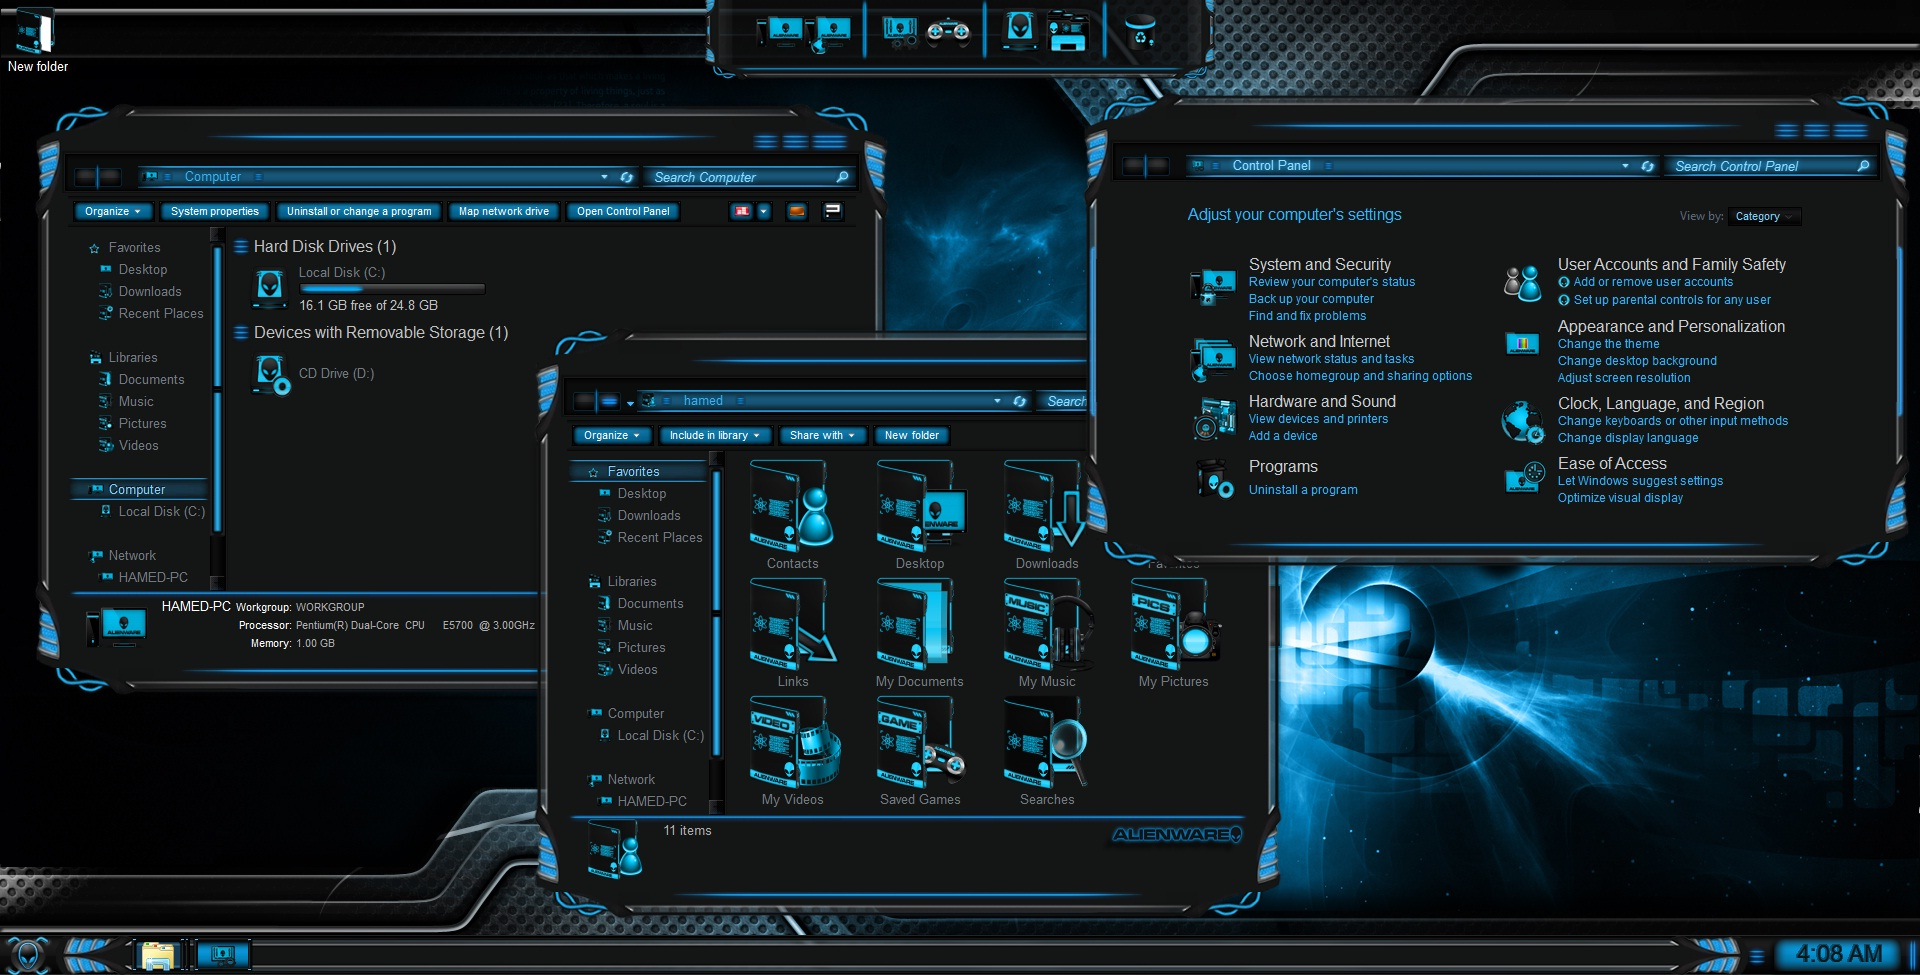 Dark neon skin pack for windows 7 [windows theme].